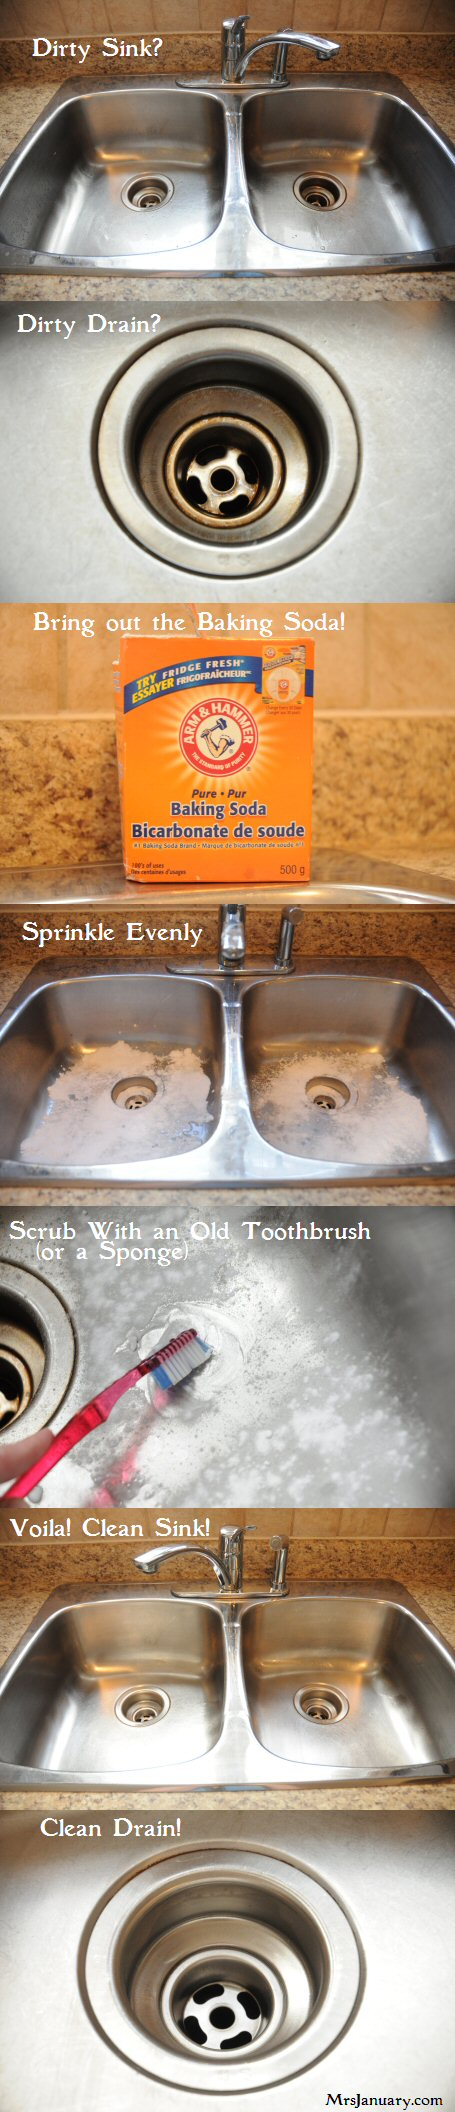 How to clean stainless steel kitchen sink or drain how - Best way to clean kitchen sink drain ...